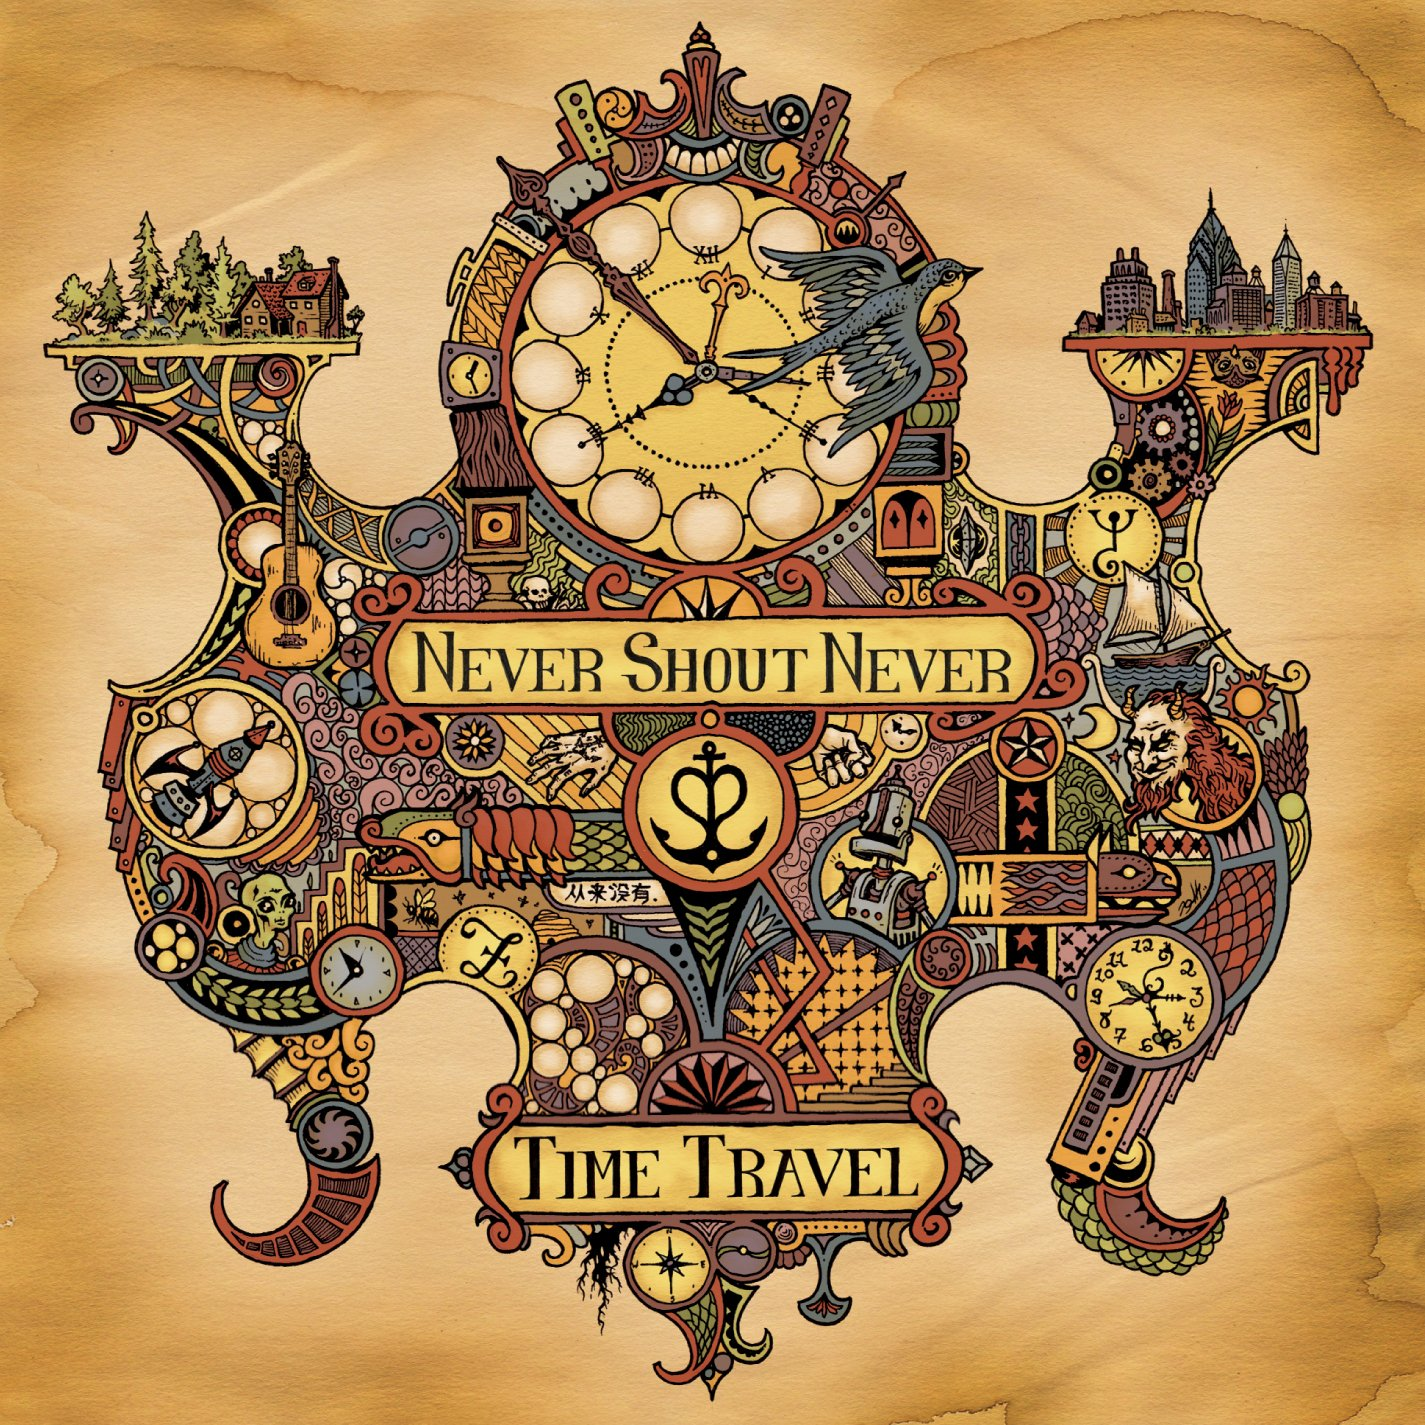 Time Travel Images Never Shout Never Time Travel Amazoncom Music